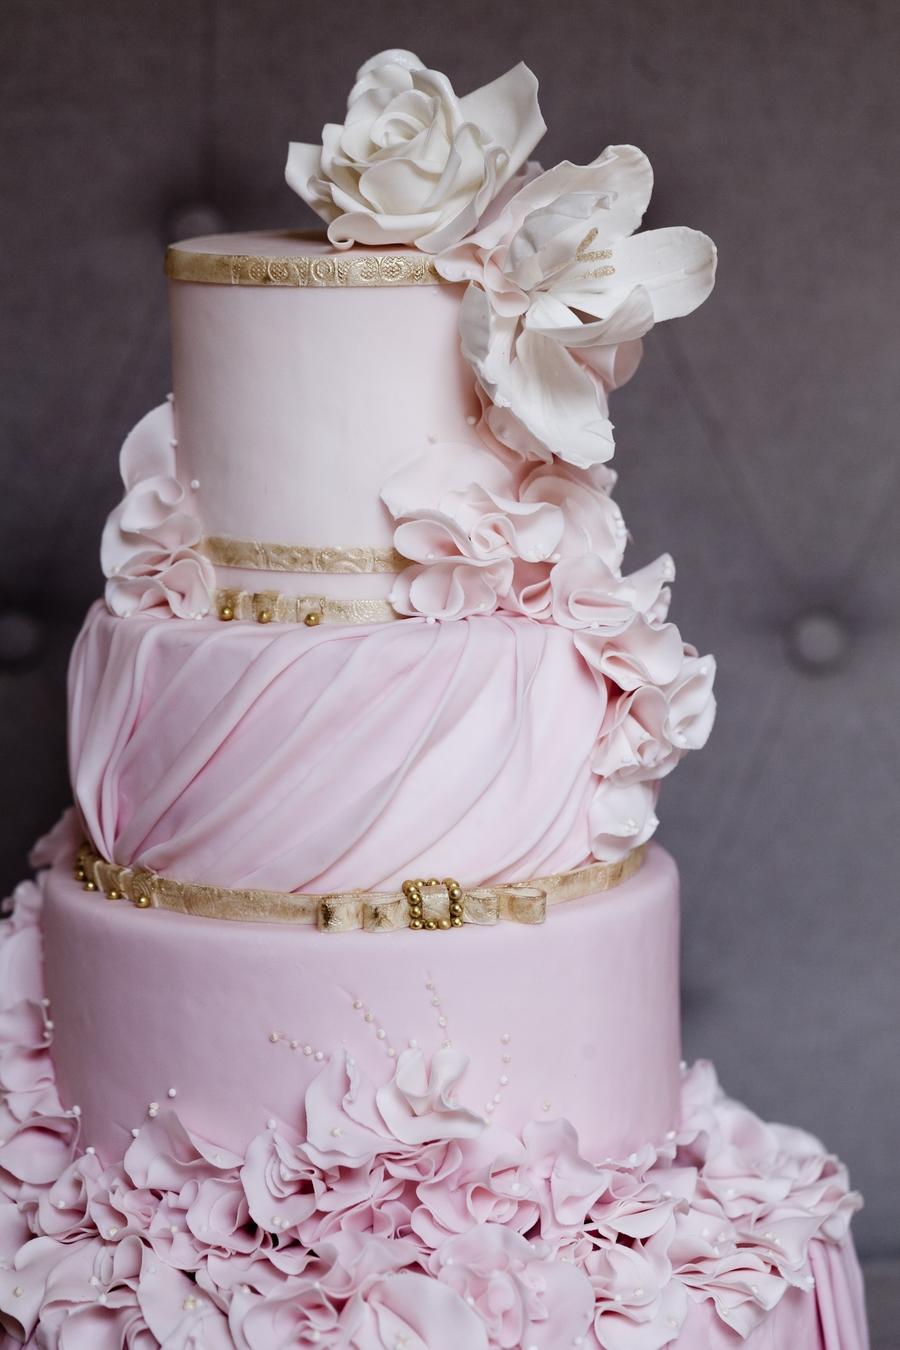 Vera Wang Inspiration on Cake Central